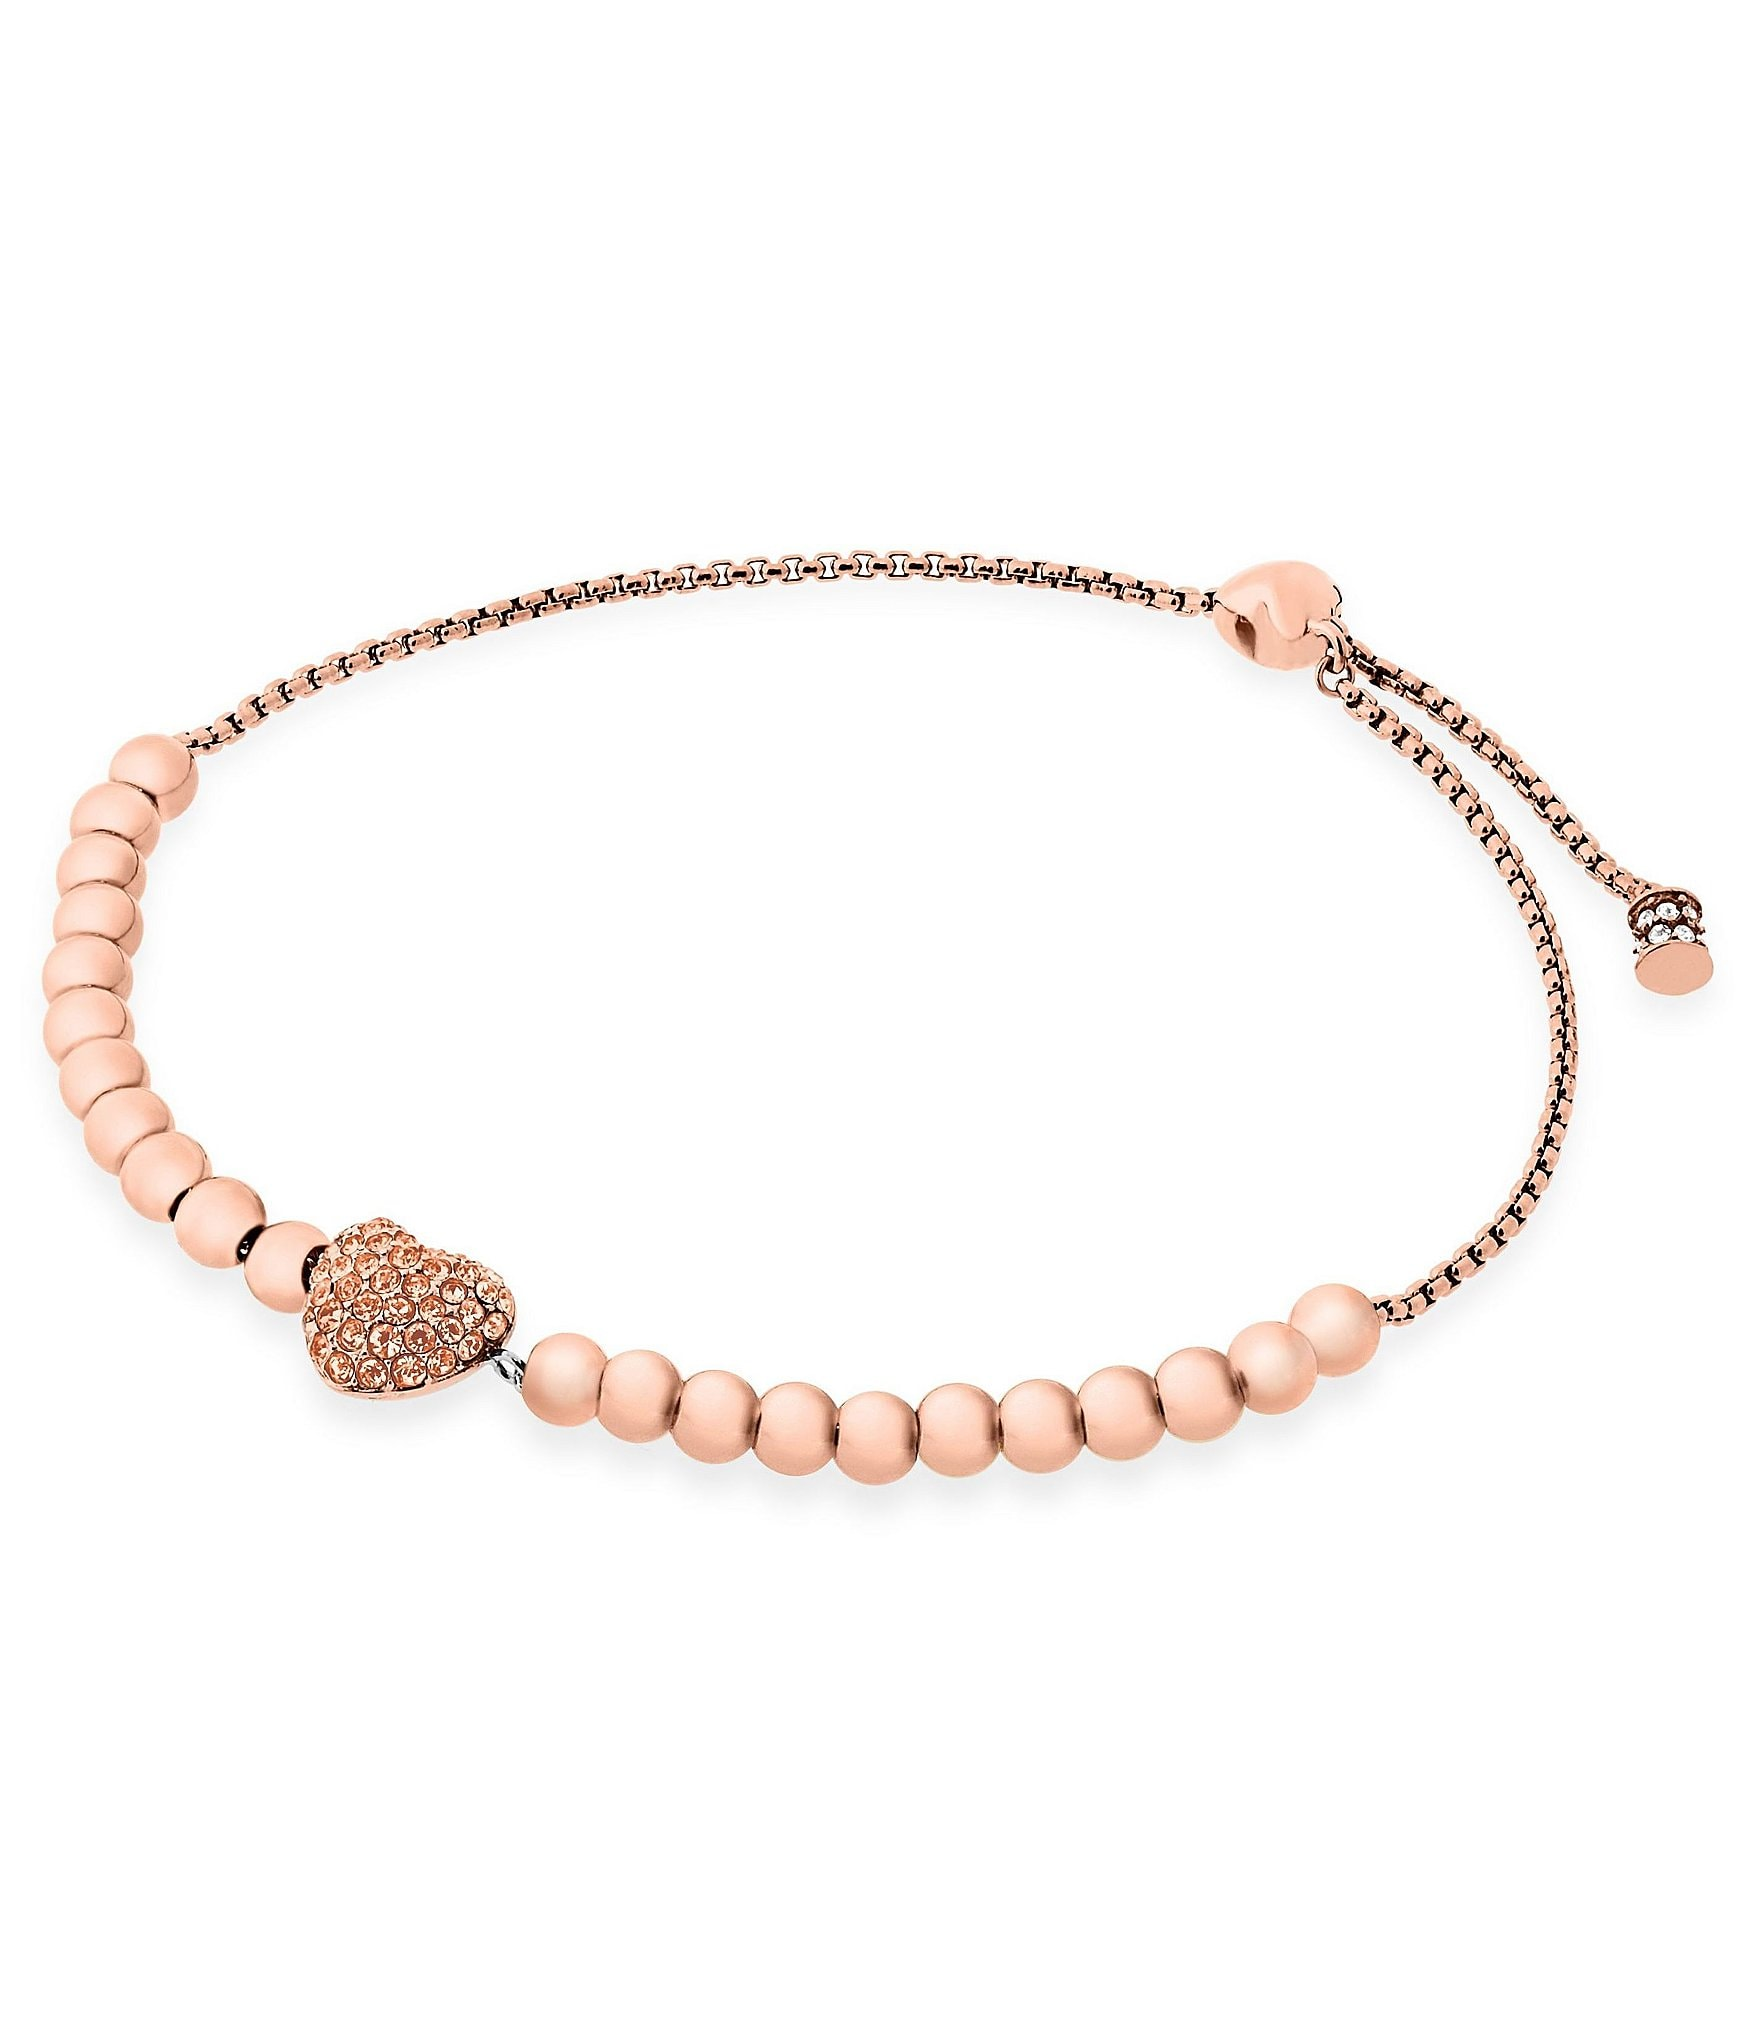 547e0ece94734 Buy michael kors rose gold heart bracelet   OFF64% Discounted